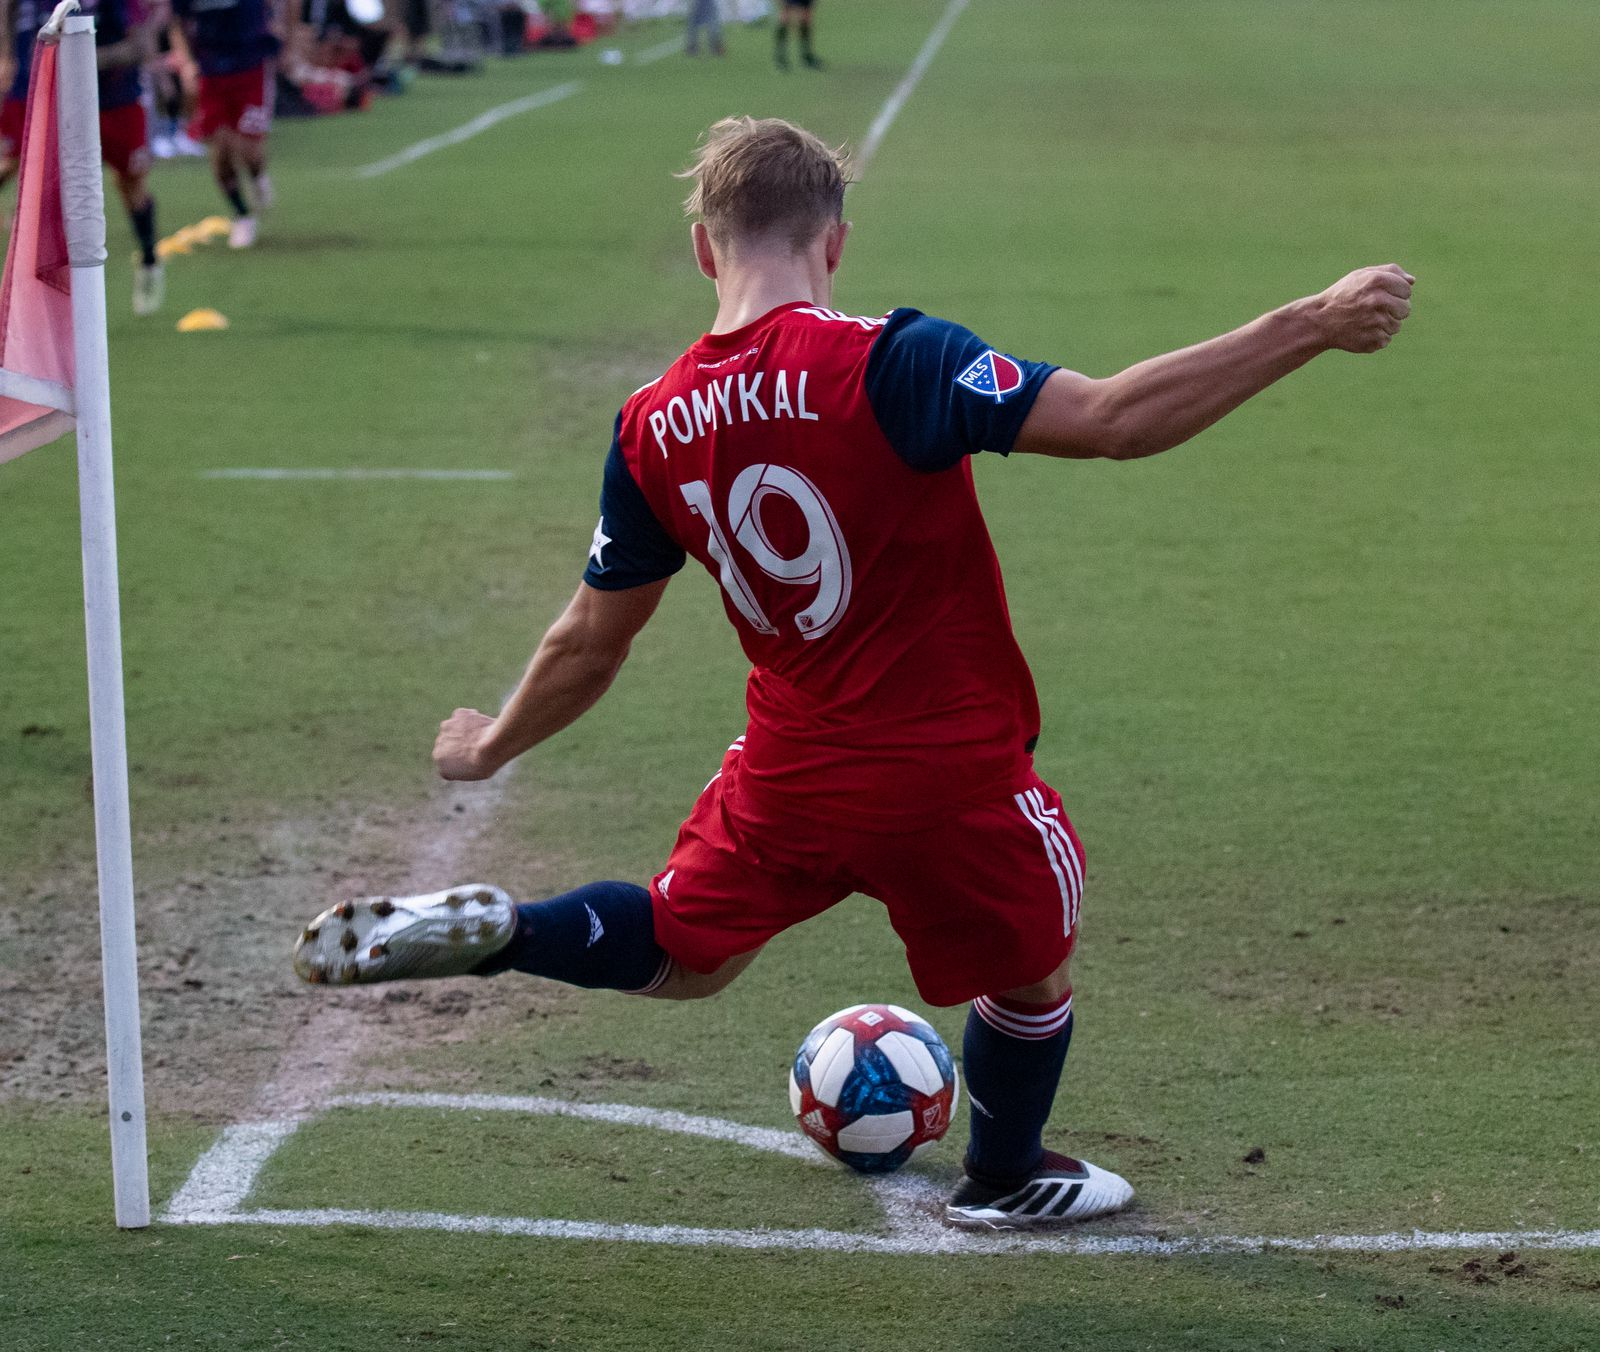 DALLAS, TX - JUNE 19: Paxton Pomykal takes a corner during the Lamar Hunt U.S. Open Cup round of 16 soccer game between FC Dallas and New Mexico United on June 19, 2019 at Westcott Field in Dallas, Texas.  (Photo by Matthew Visinsky)